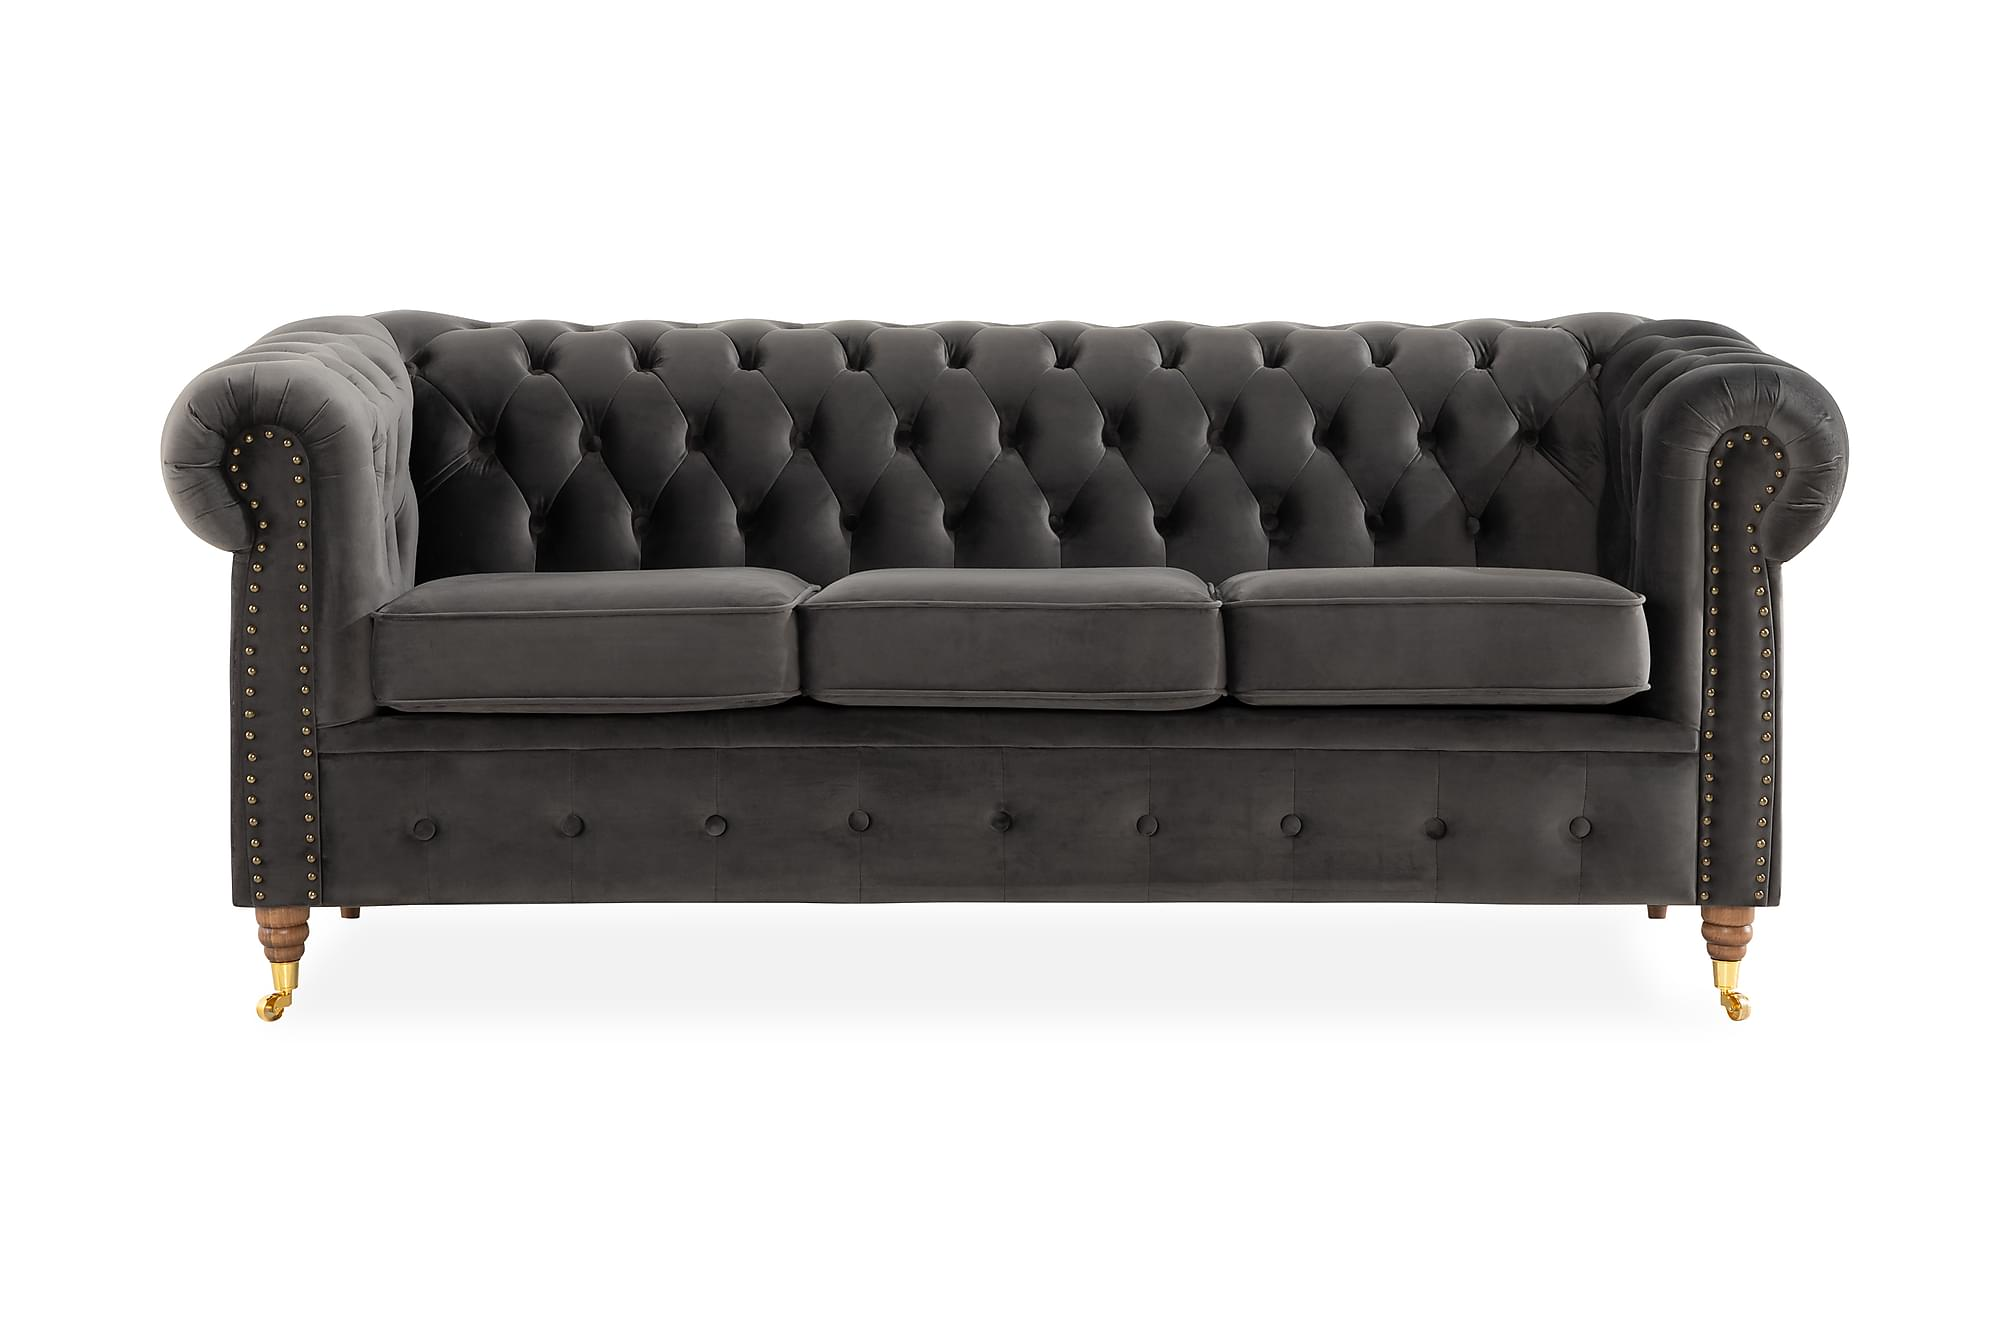 CHESTERFIELD LUX 3-sits Soffa Grå, Chesterfieldsoffor